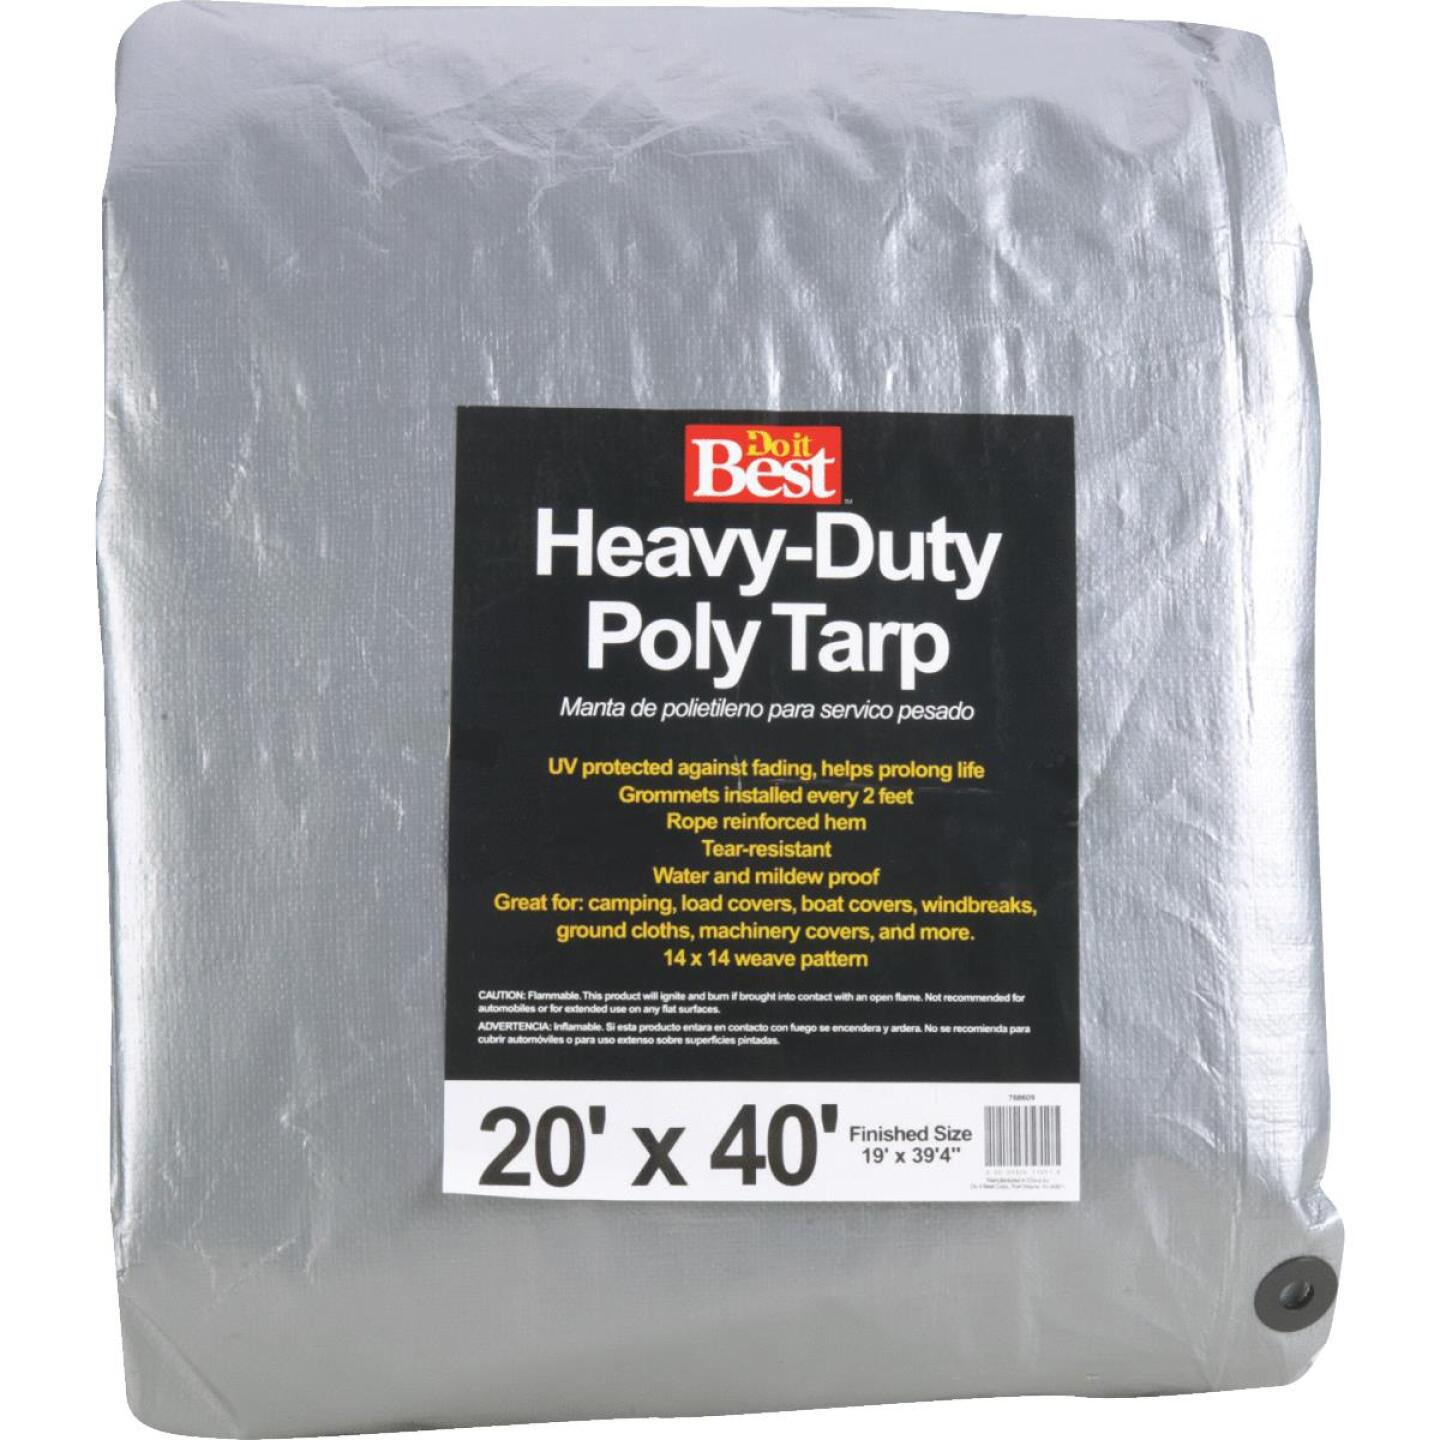 Do it Best Silver Woven 20 Ft. x 40 Ft. Heavy Duty Poly Tarp Image 1